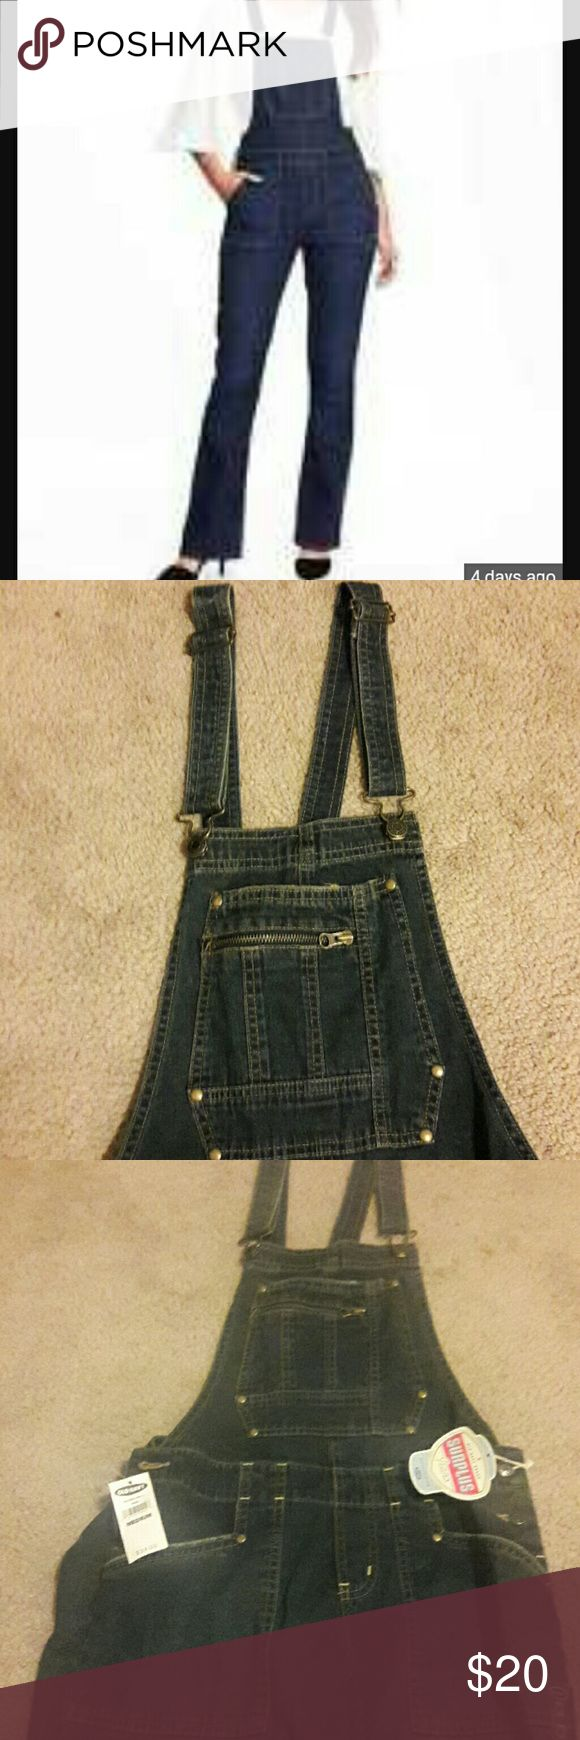 Dark Denim Overalls Super cute Old Navy dark denim overalls. Perfect for a day to lounge, run errands,  family or date night. Old Navy Jeans Overalls